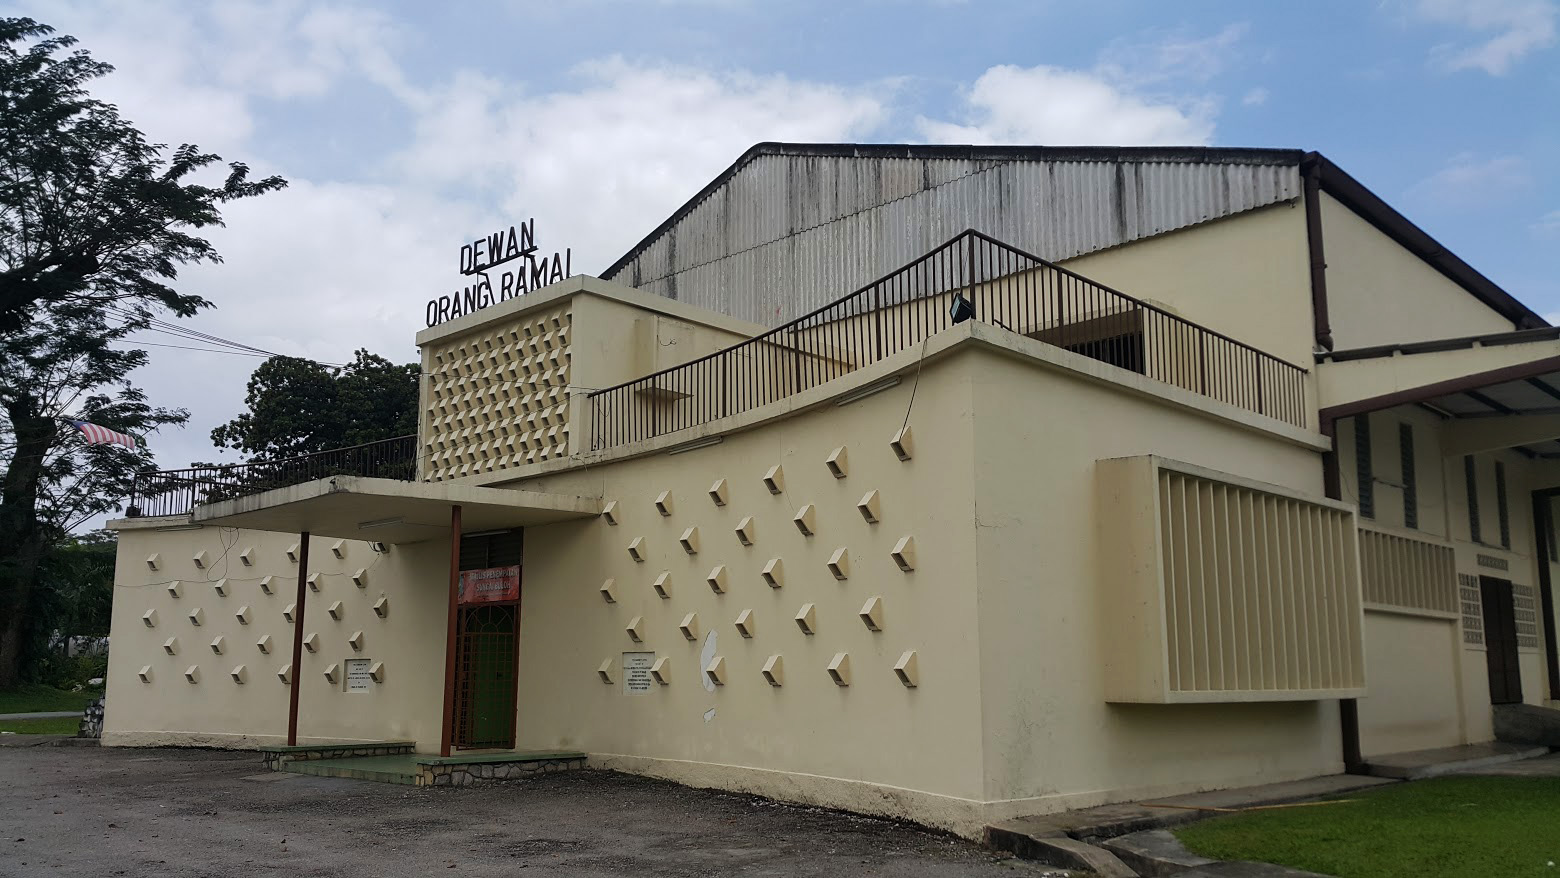 The Community Hall that houses the office of the Sungai Buloh Settlement Council. (photo by Teoh Chee Keong)